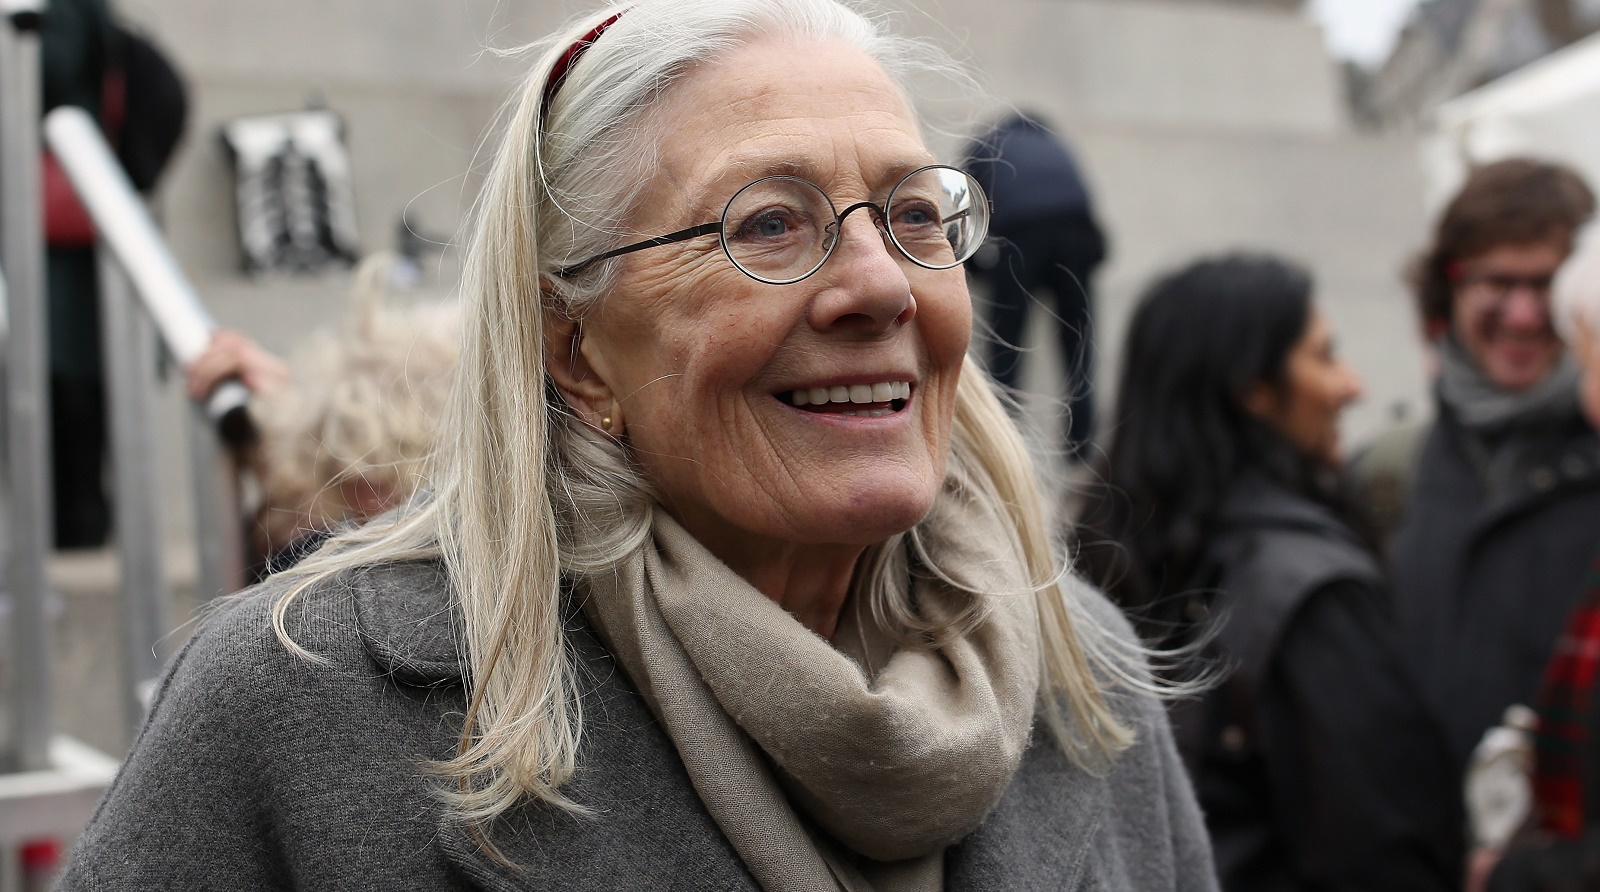 Angus Thongs And Perfect Snogging Cast vanessa redgrave joins cast of new gay bbc drama